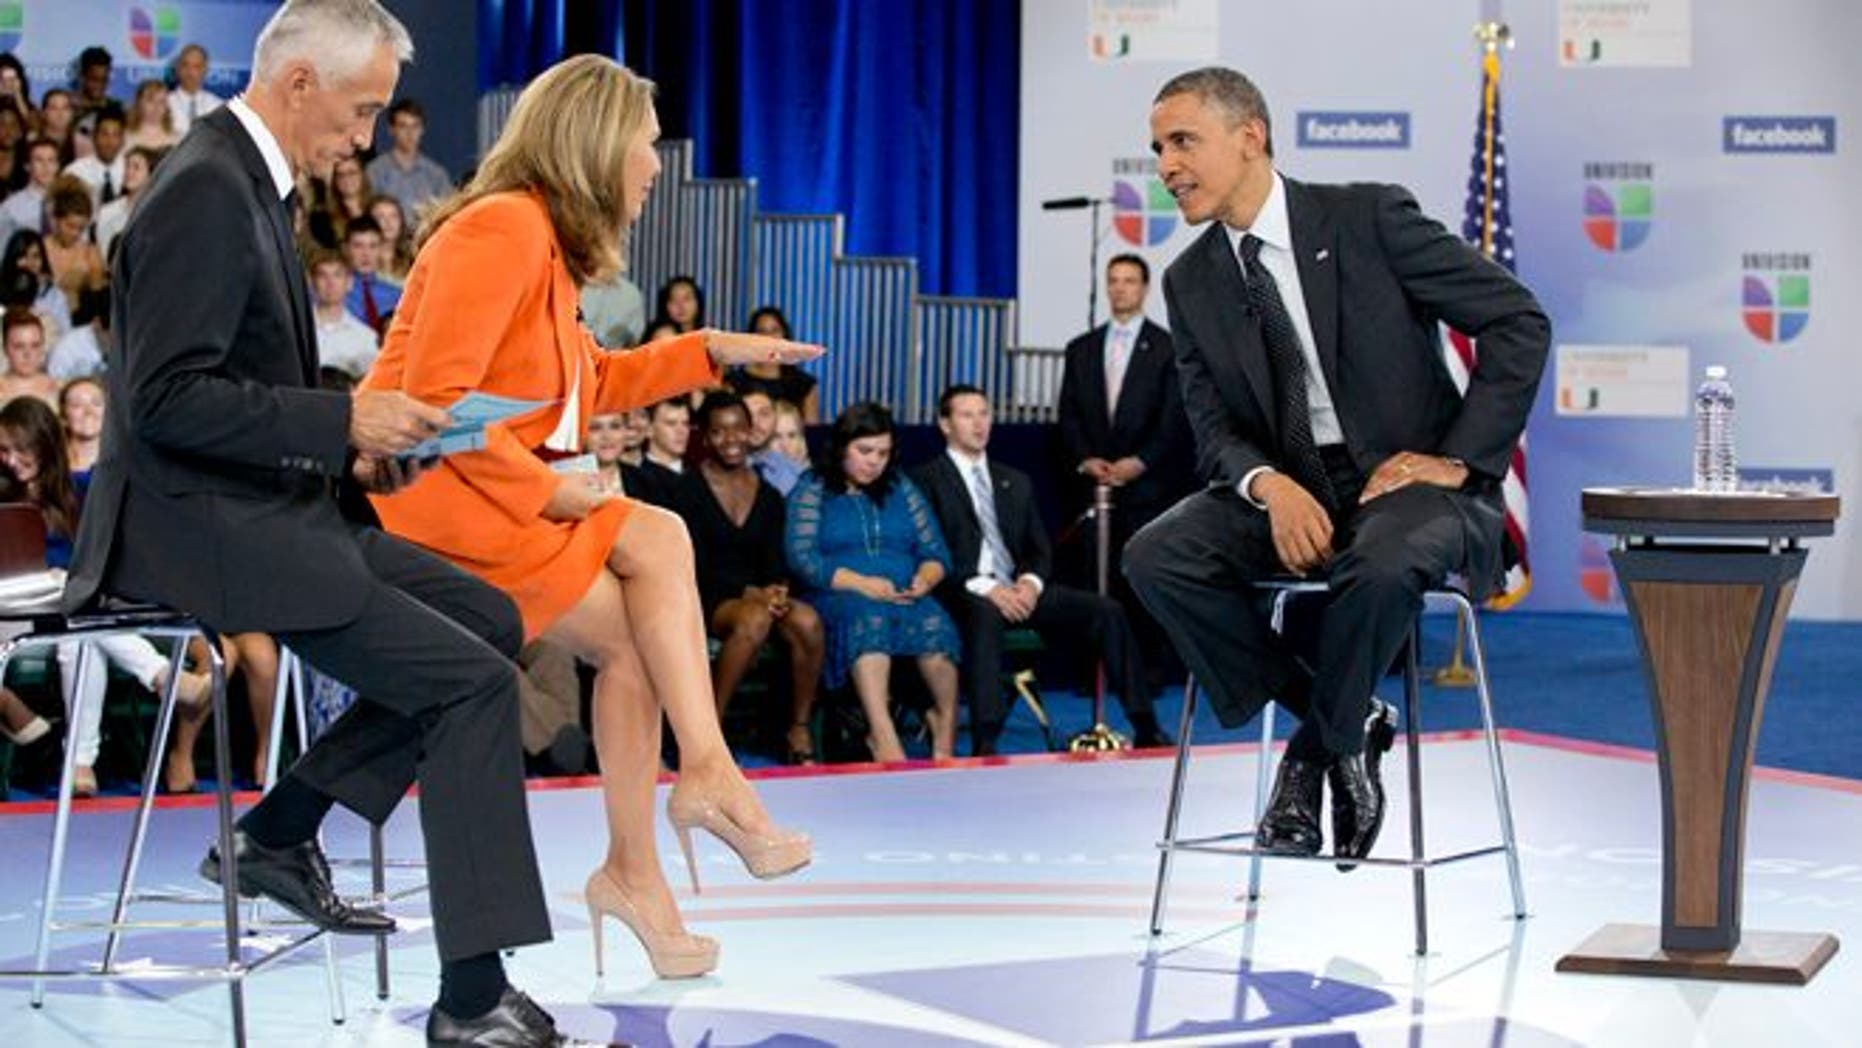 Sept. 20, 2012: President Obama participates in a town hall hosted by Univision at the University of Miami.